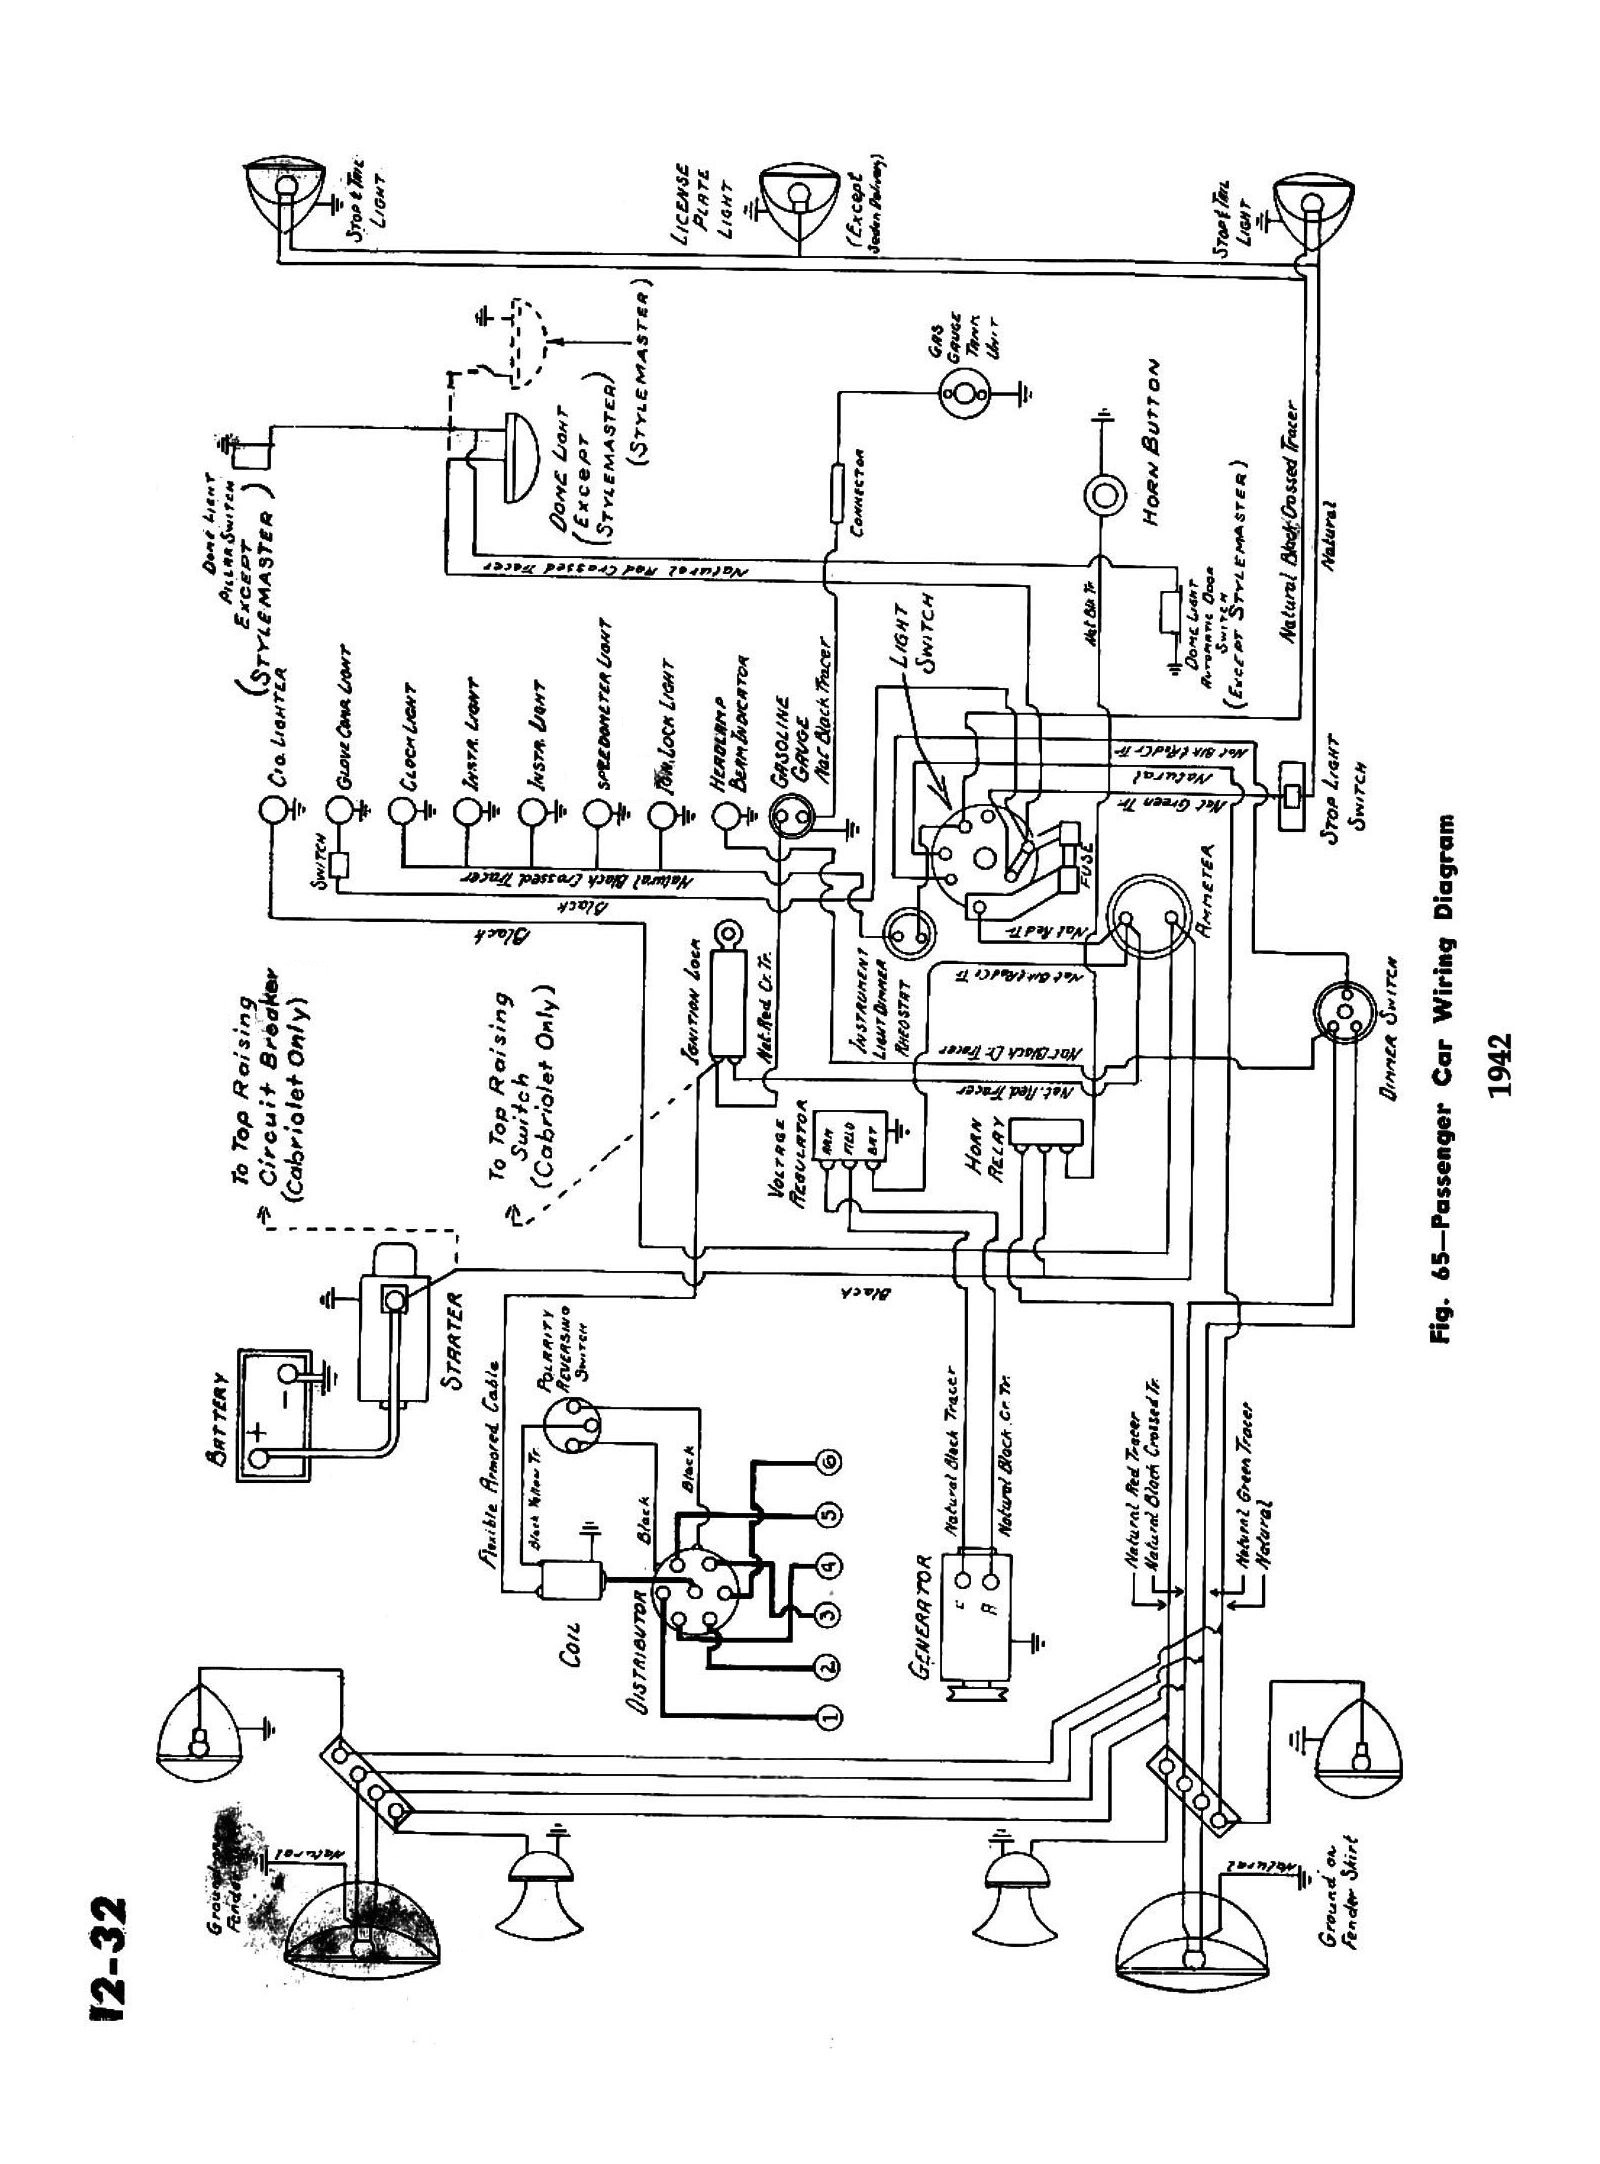 1940 Buick Wiring Diagram Reinvent Your Rendezvous 1942 Chevy Detailed Schematics Rh Keyplusrubber Com 1965